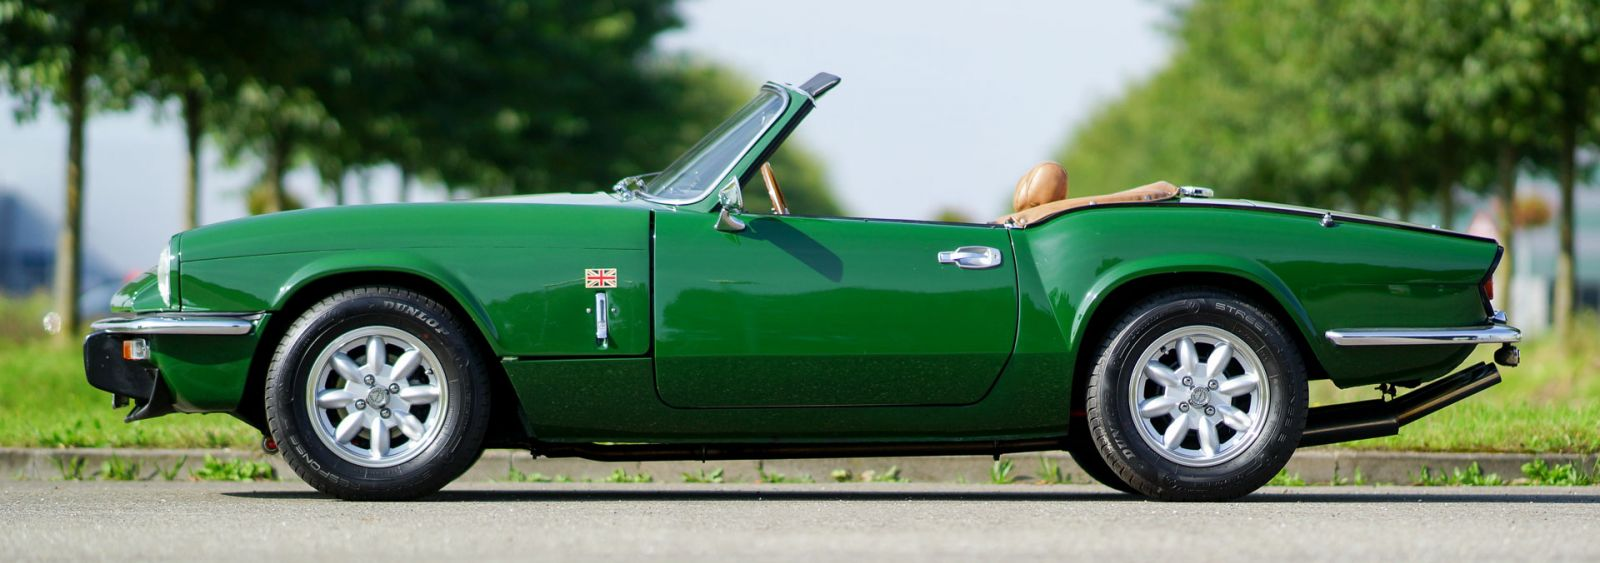 Triumph Spitfire 1500 TC, 1978 - Welcome to ClassiCarGarage